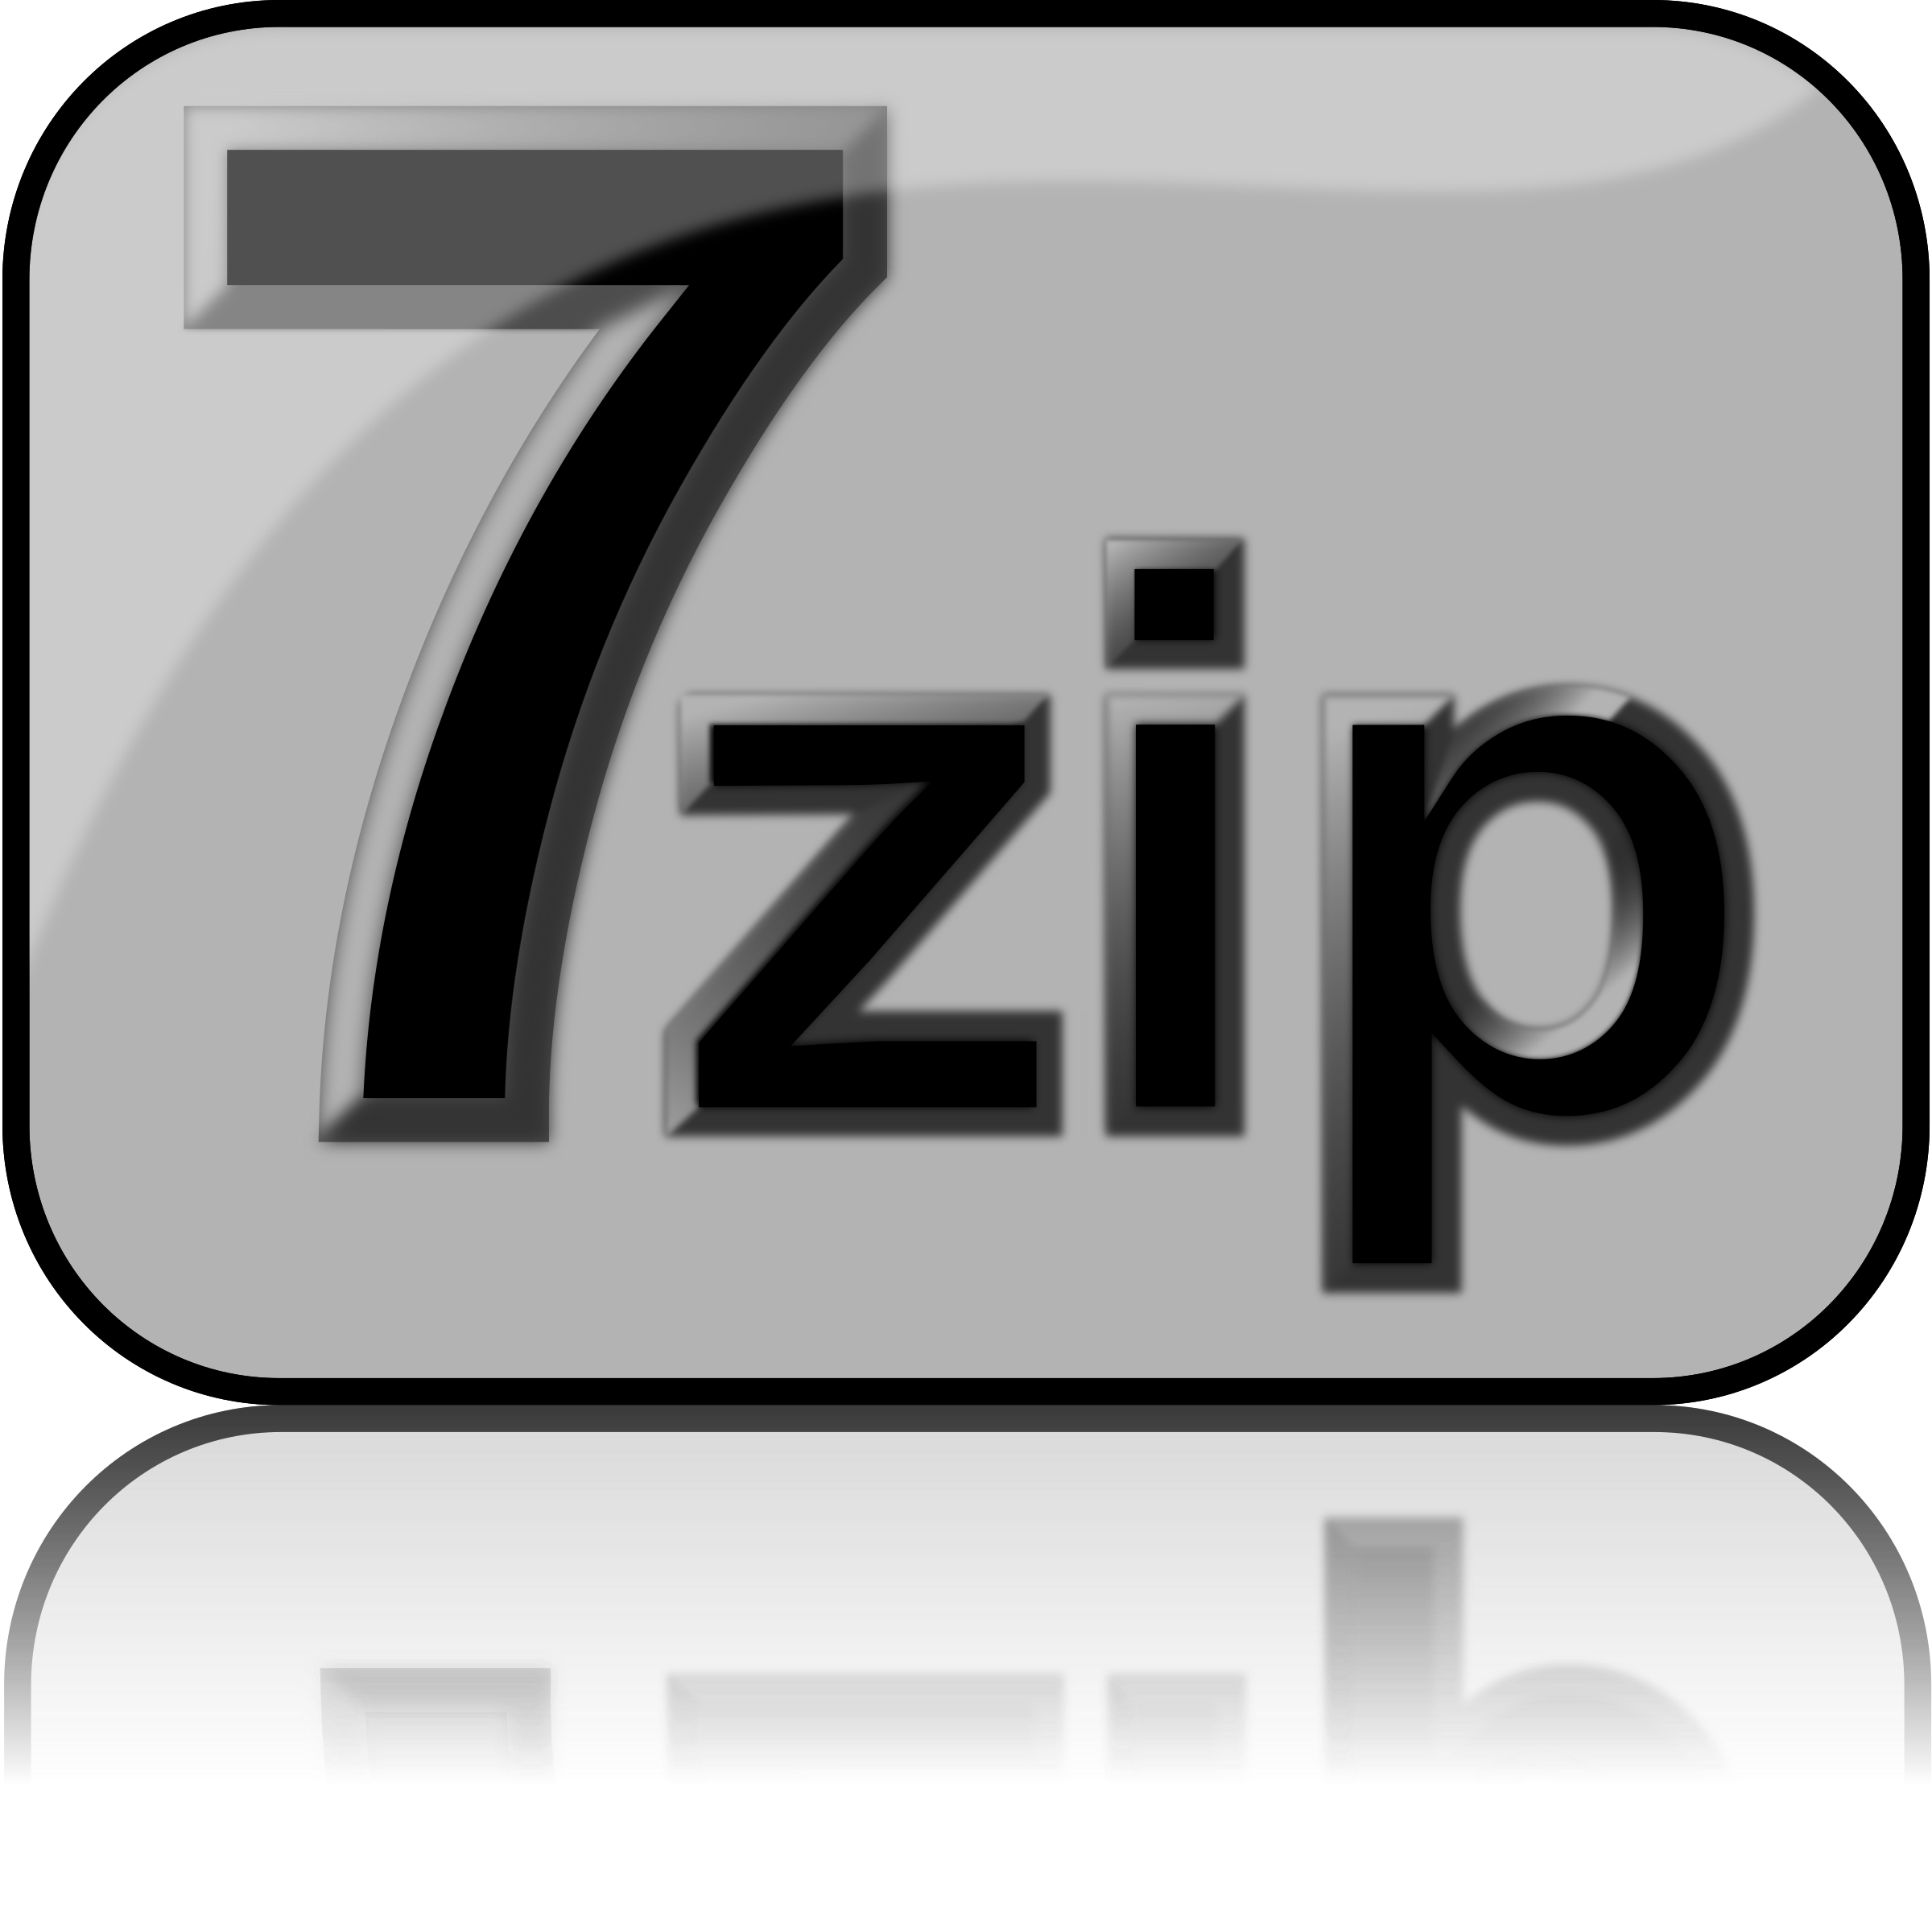 7zip Glossy Extrude Gray by kg